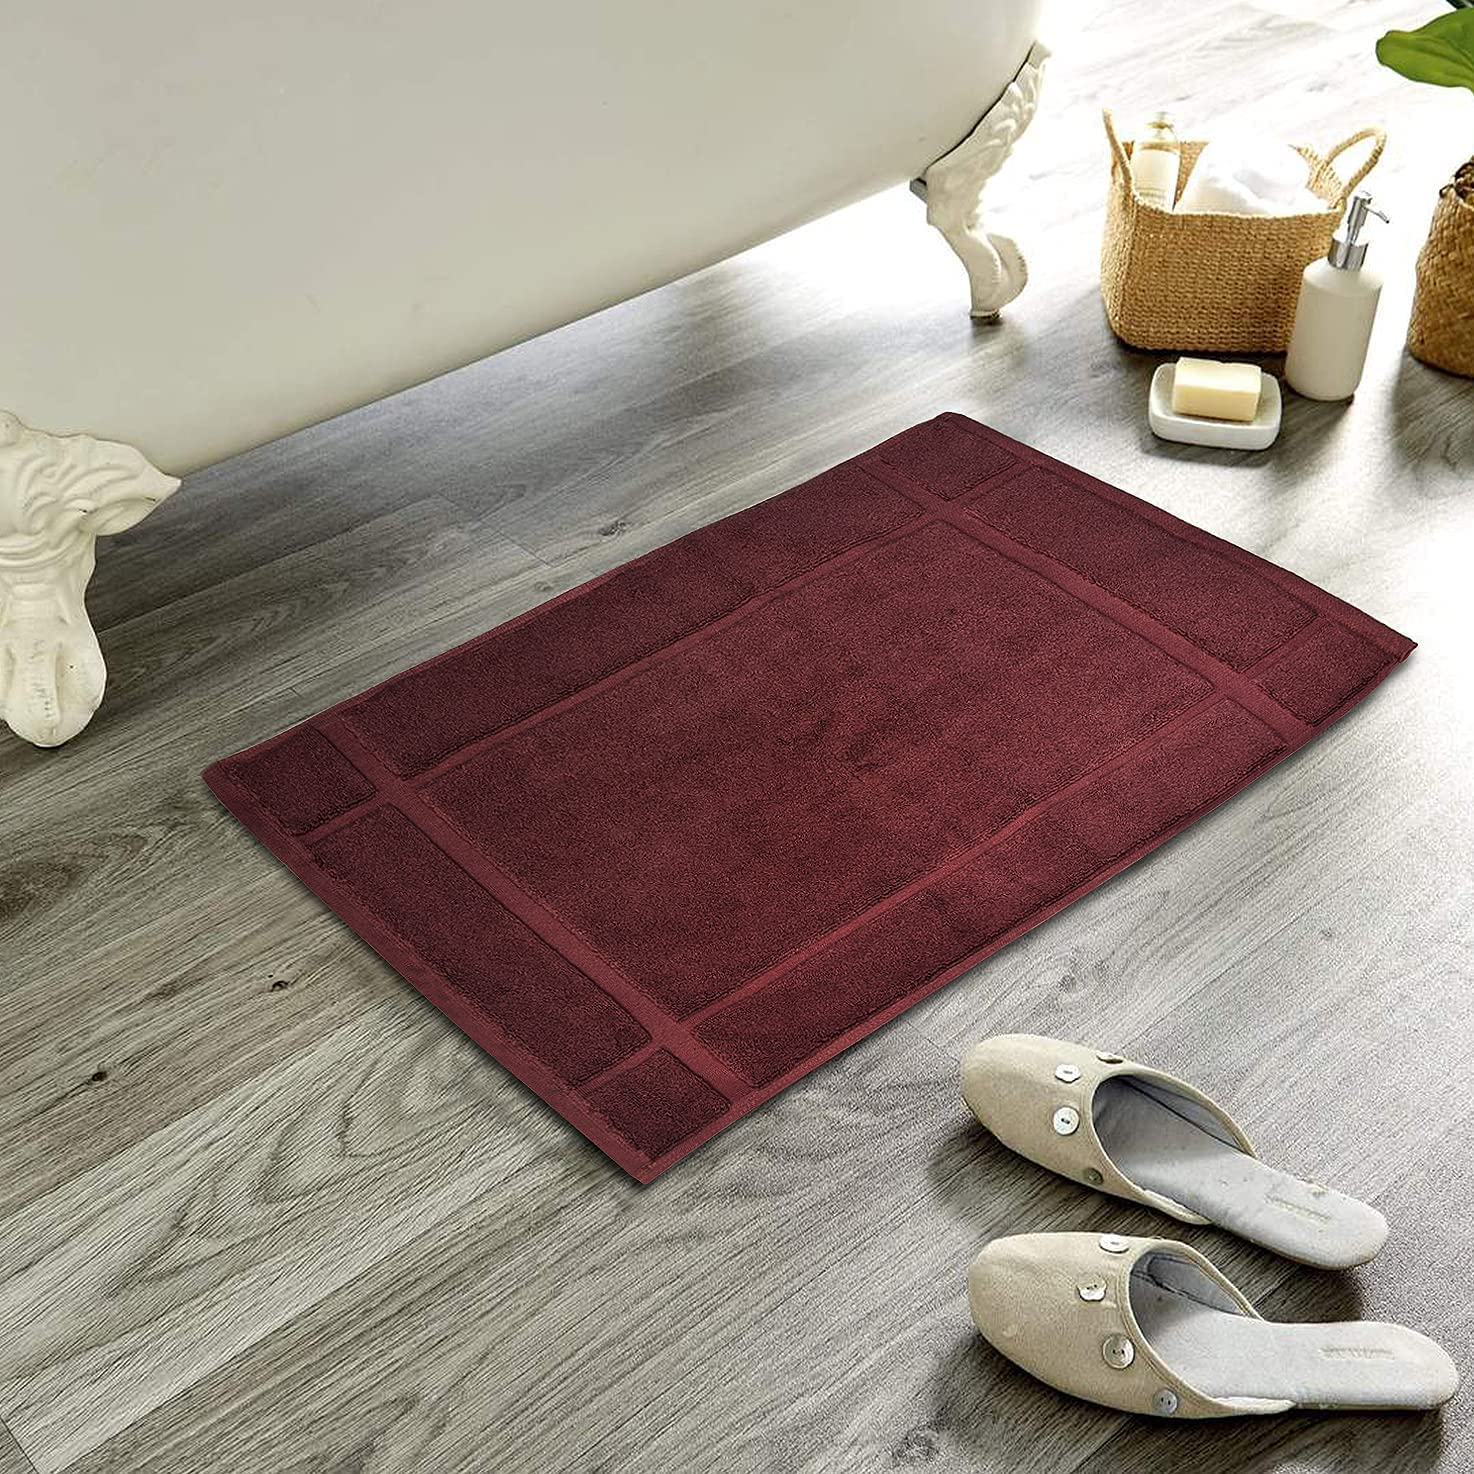 Ample Decor Bath Mats Minneapolis Mall for Thick and Max 61% OFF Floor Bathroom Indoor